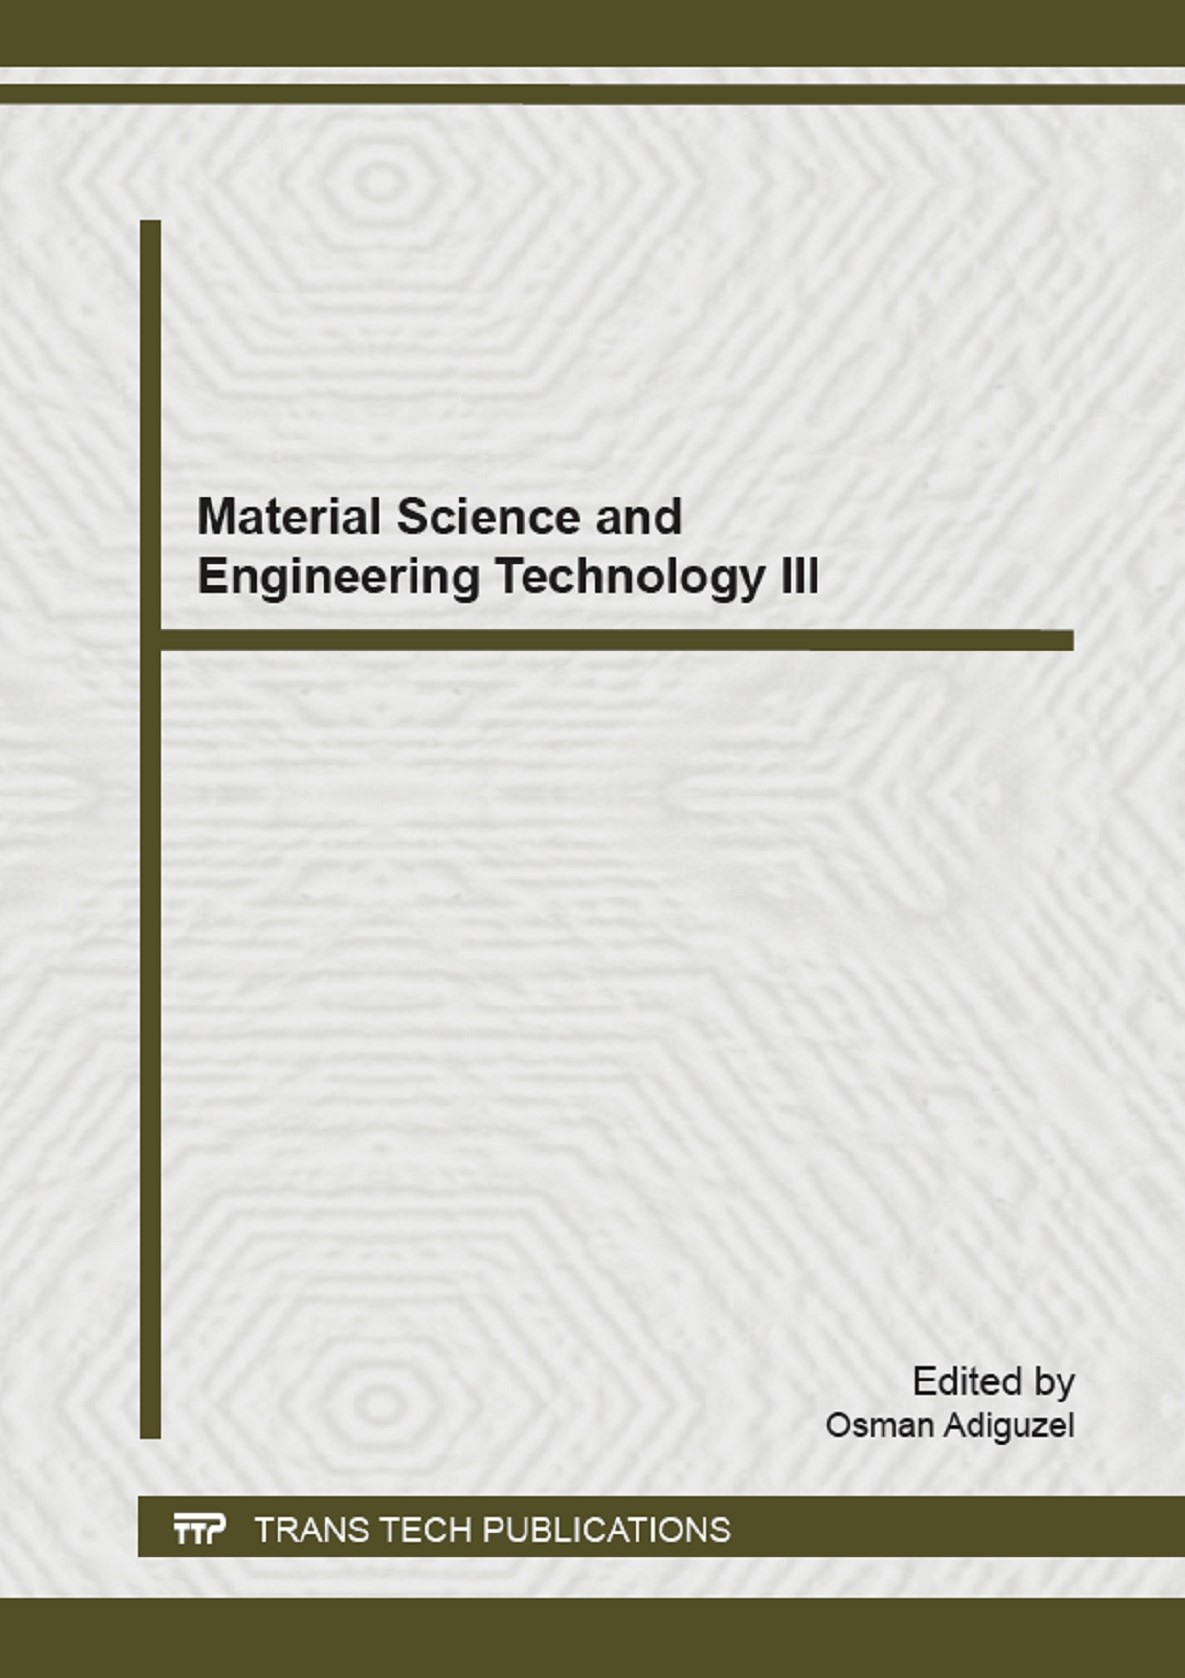 Material Science and Engineering Technology III | Adiguezel, 2015 | Buch (Cover)